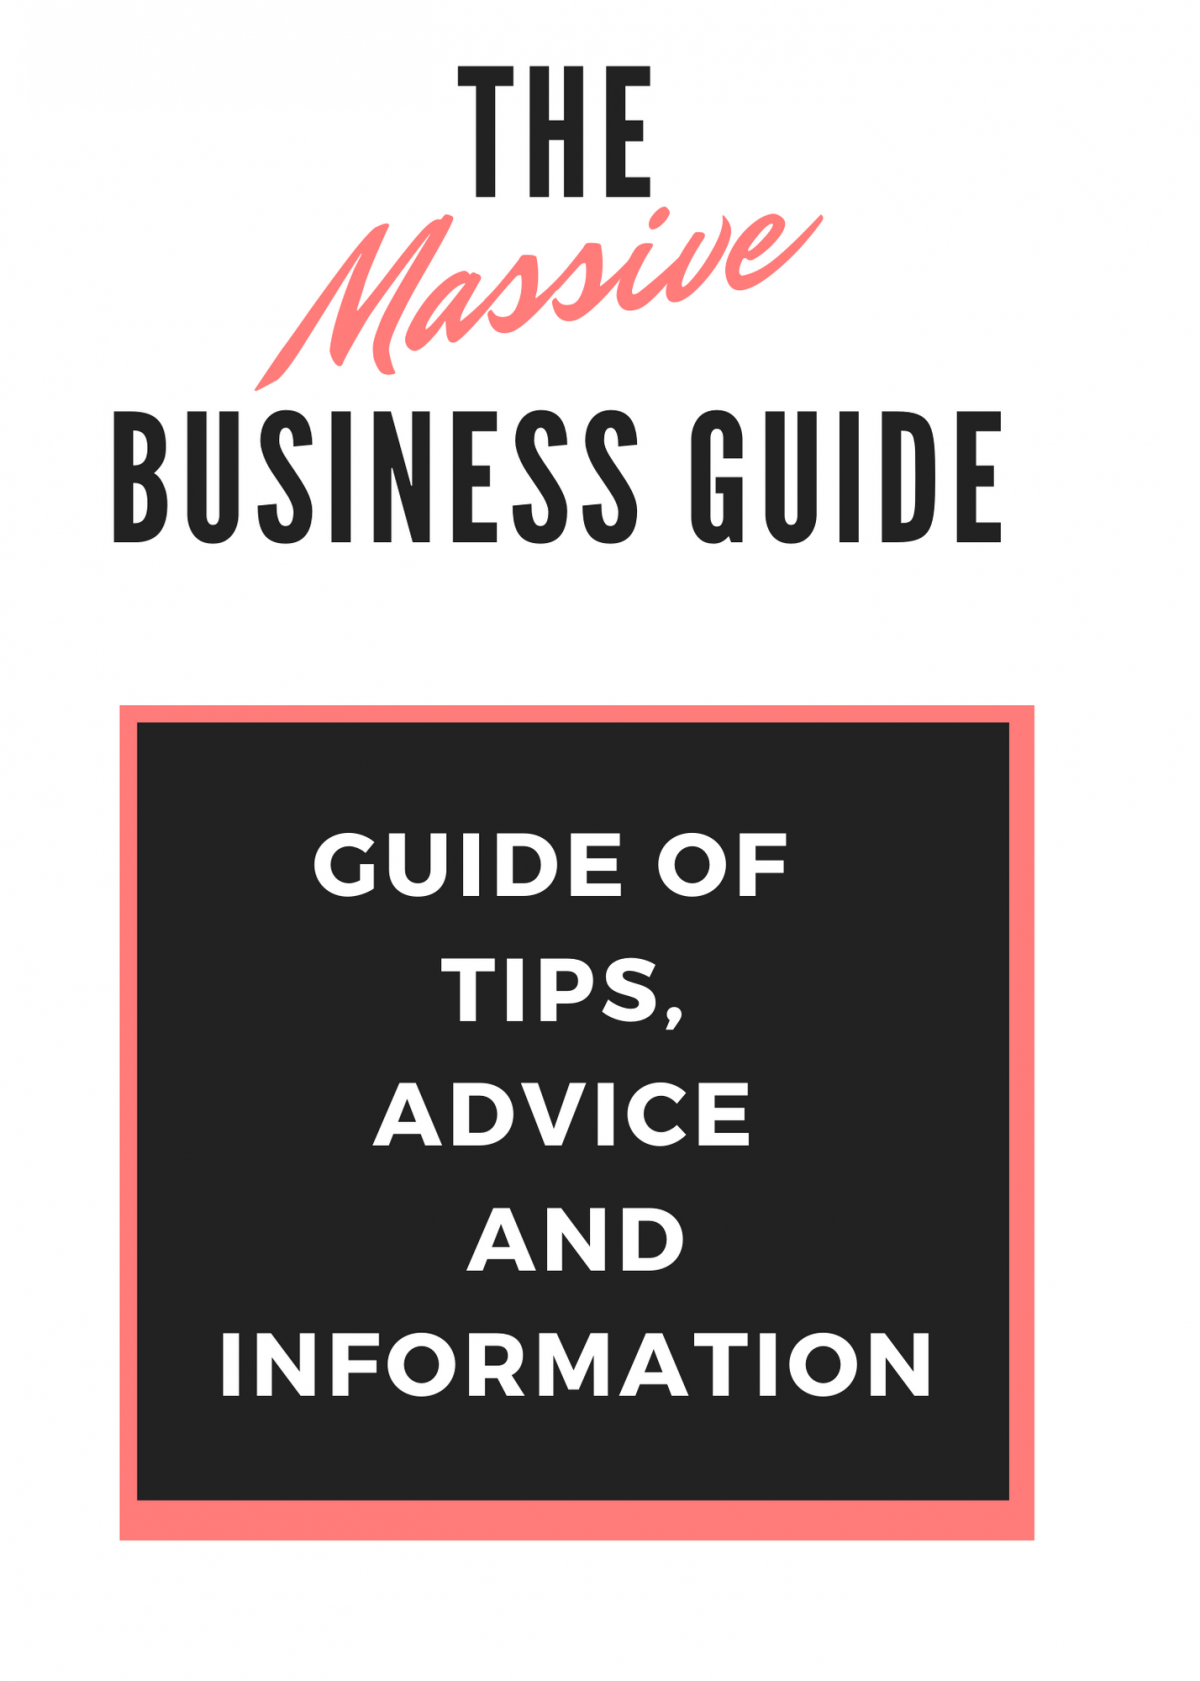 Business Guide Template